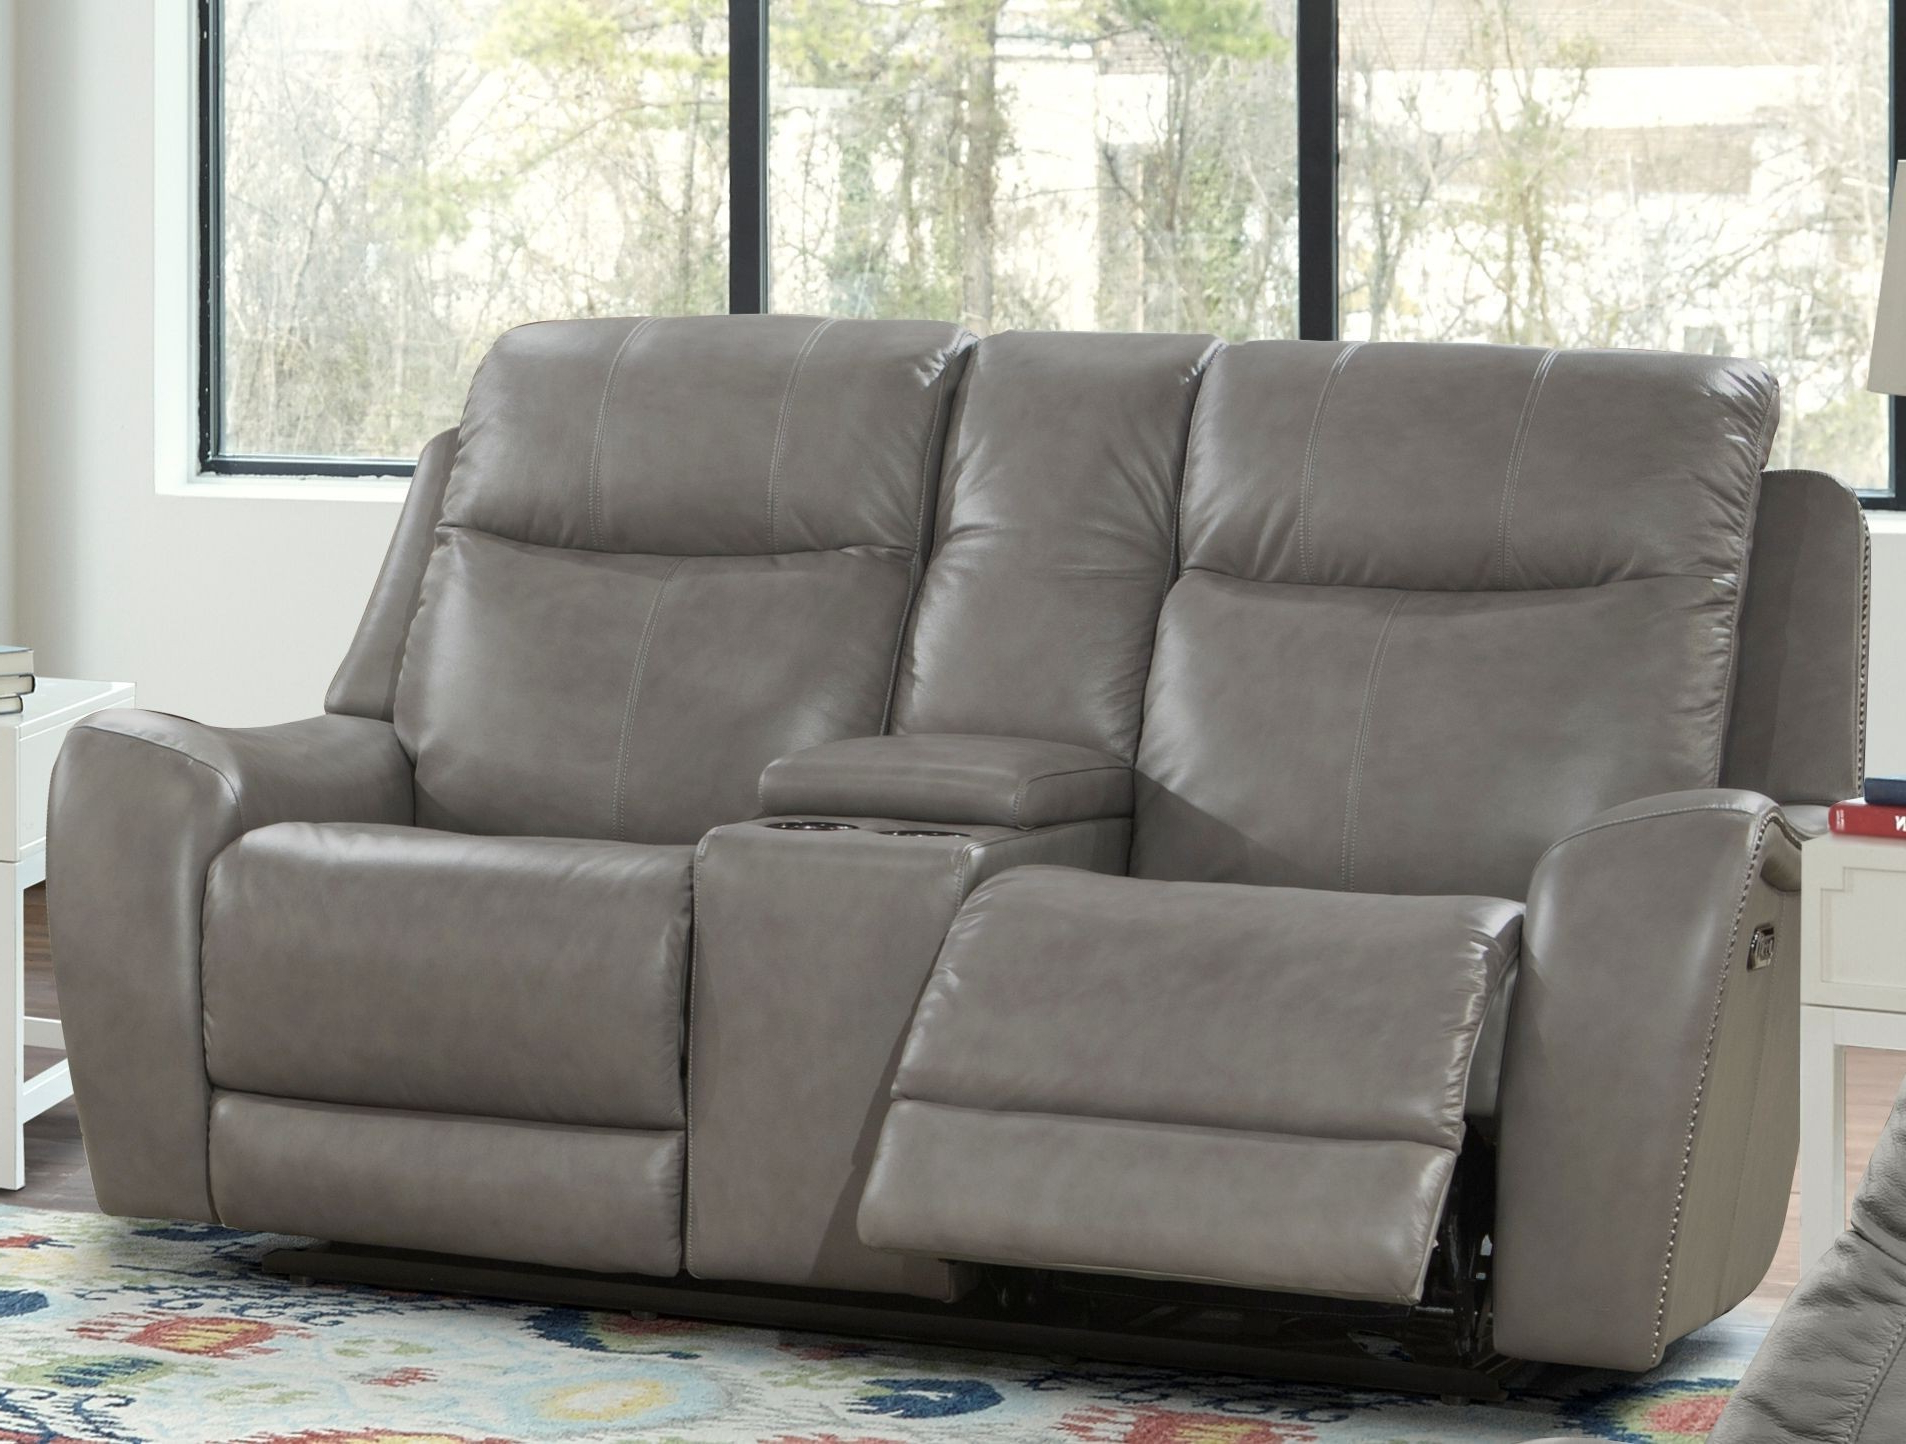 Mammoth Grey Dual Power Reclining Loveseat From Parker With Most Up To Date Dual Power Reclining Sofas (View 1 of 20)